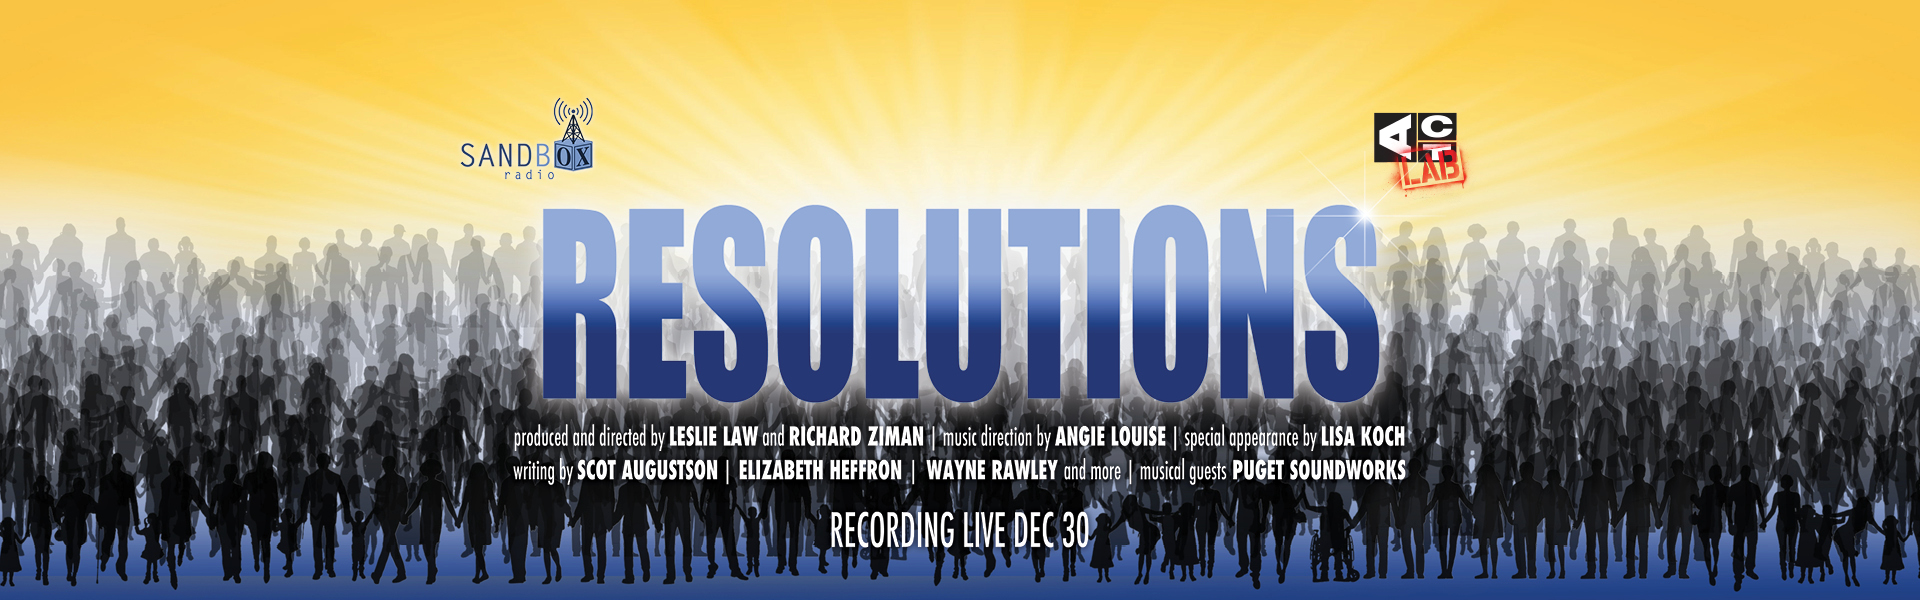 Resolutions Banner Image